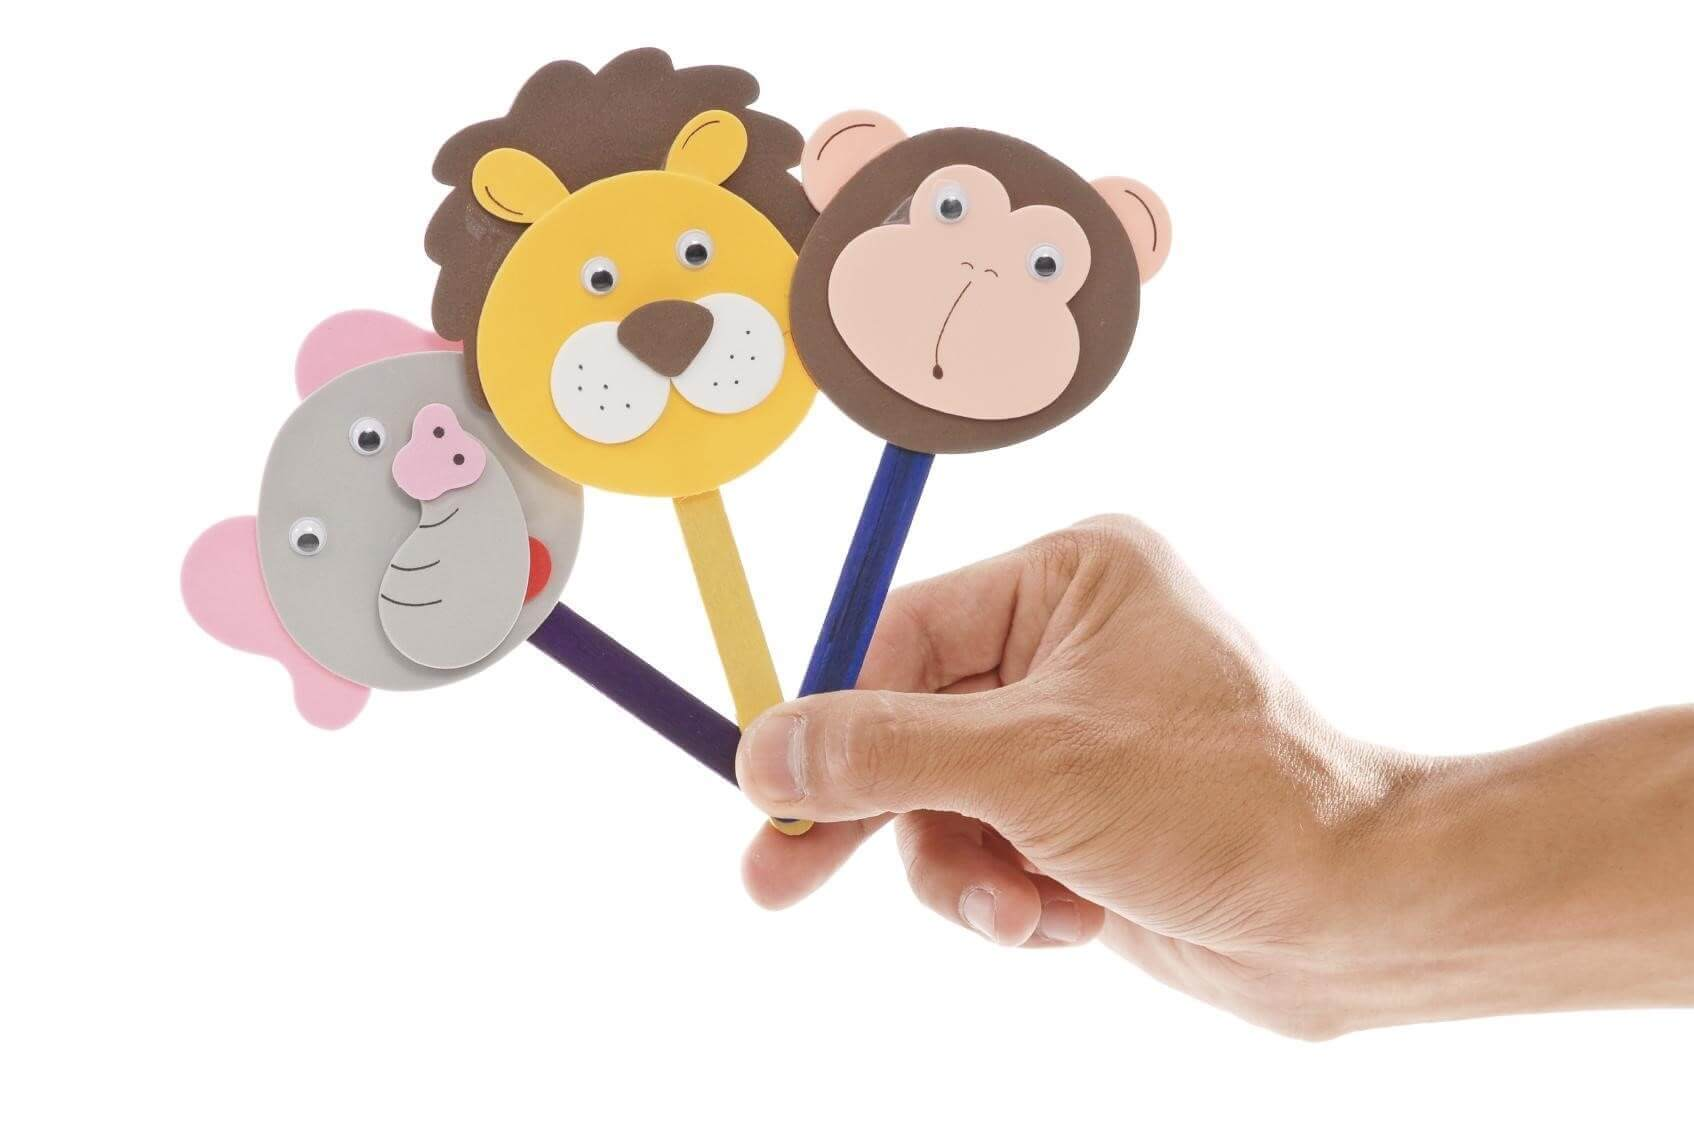 Handmade Craft Stick Animal Puppets